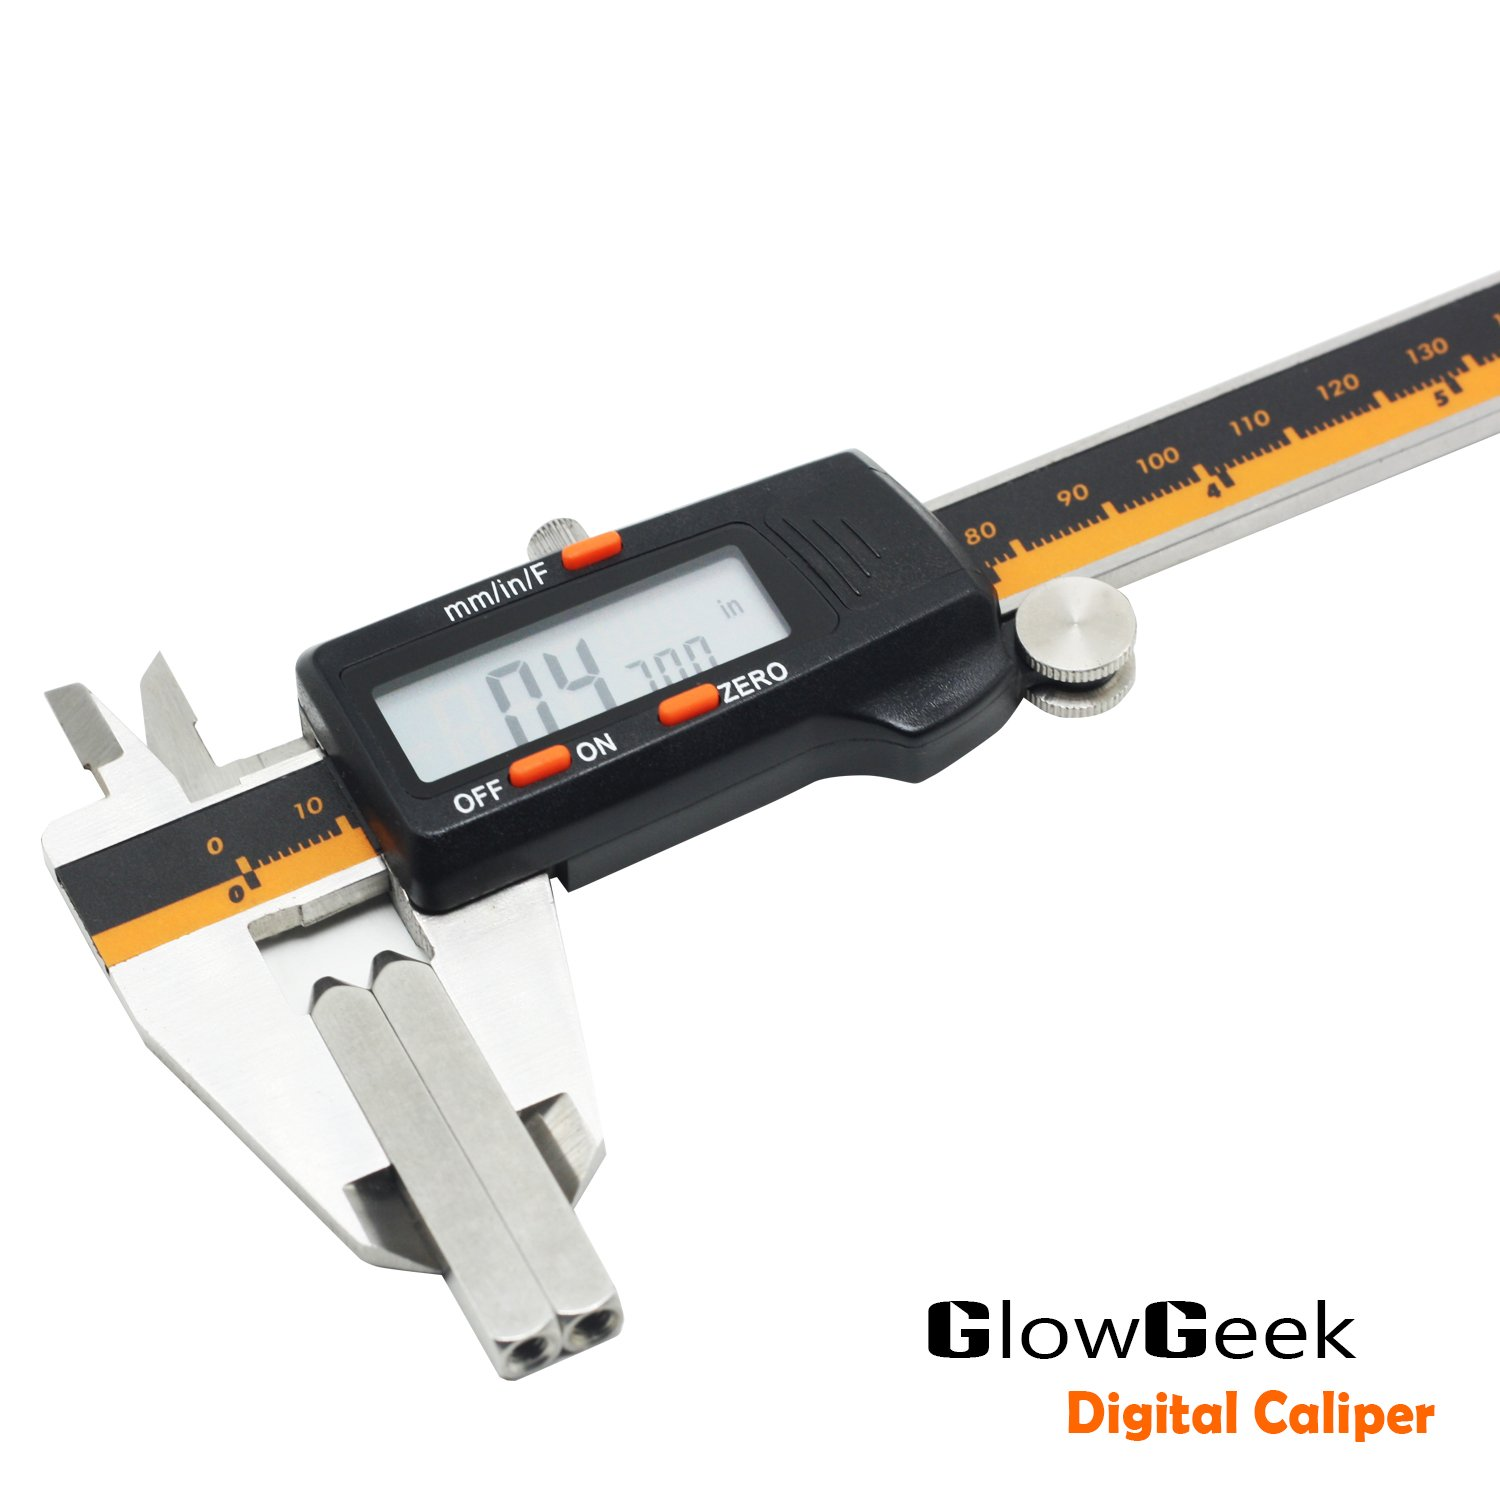 GlowGeek Electronic Digital Caliper Inch/Metric/Fractions Conversion 0-6 Inch/150 mm Stainless Steel Body Orange/Black Extra Large LCD Screen Auto Off Featured Measuring Tool by GlowGeek (Image #6)